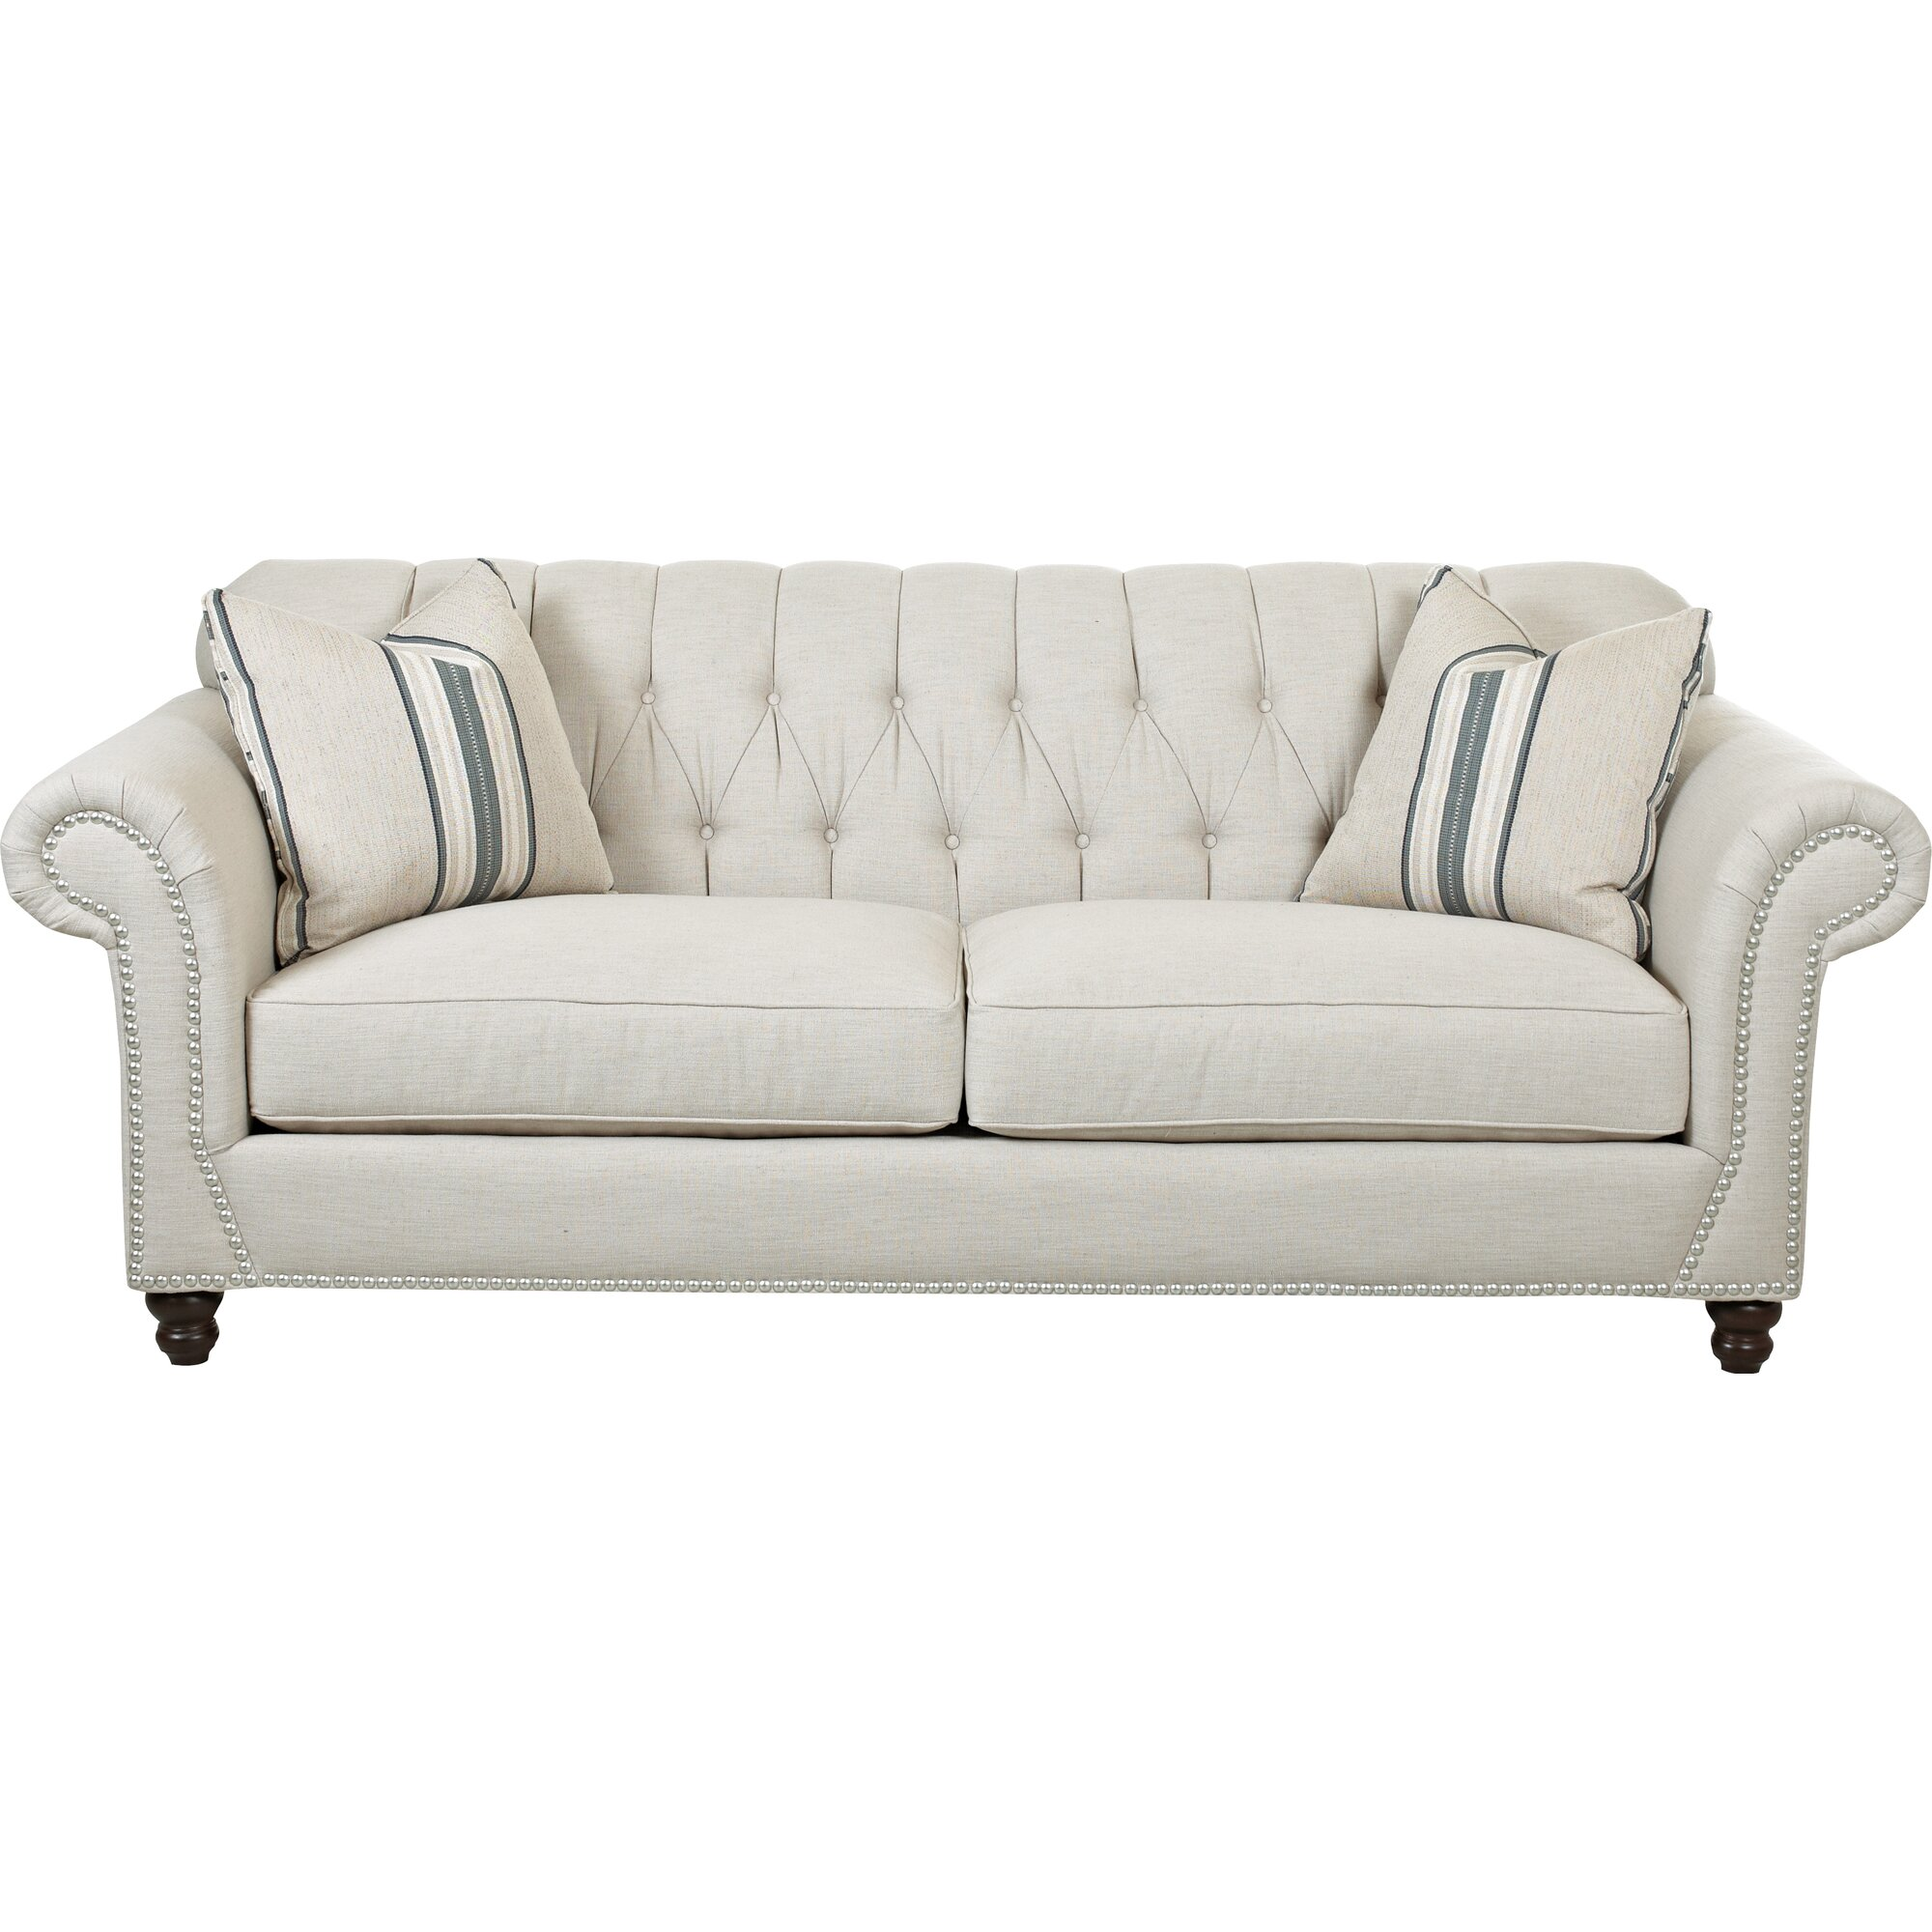 Klaussner Leather Sofa Review - Leather Sectional Sofa